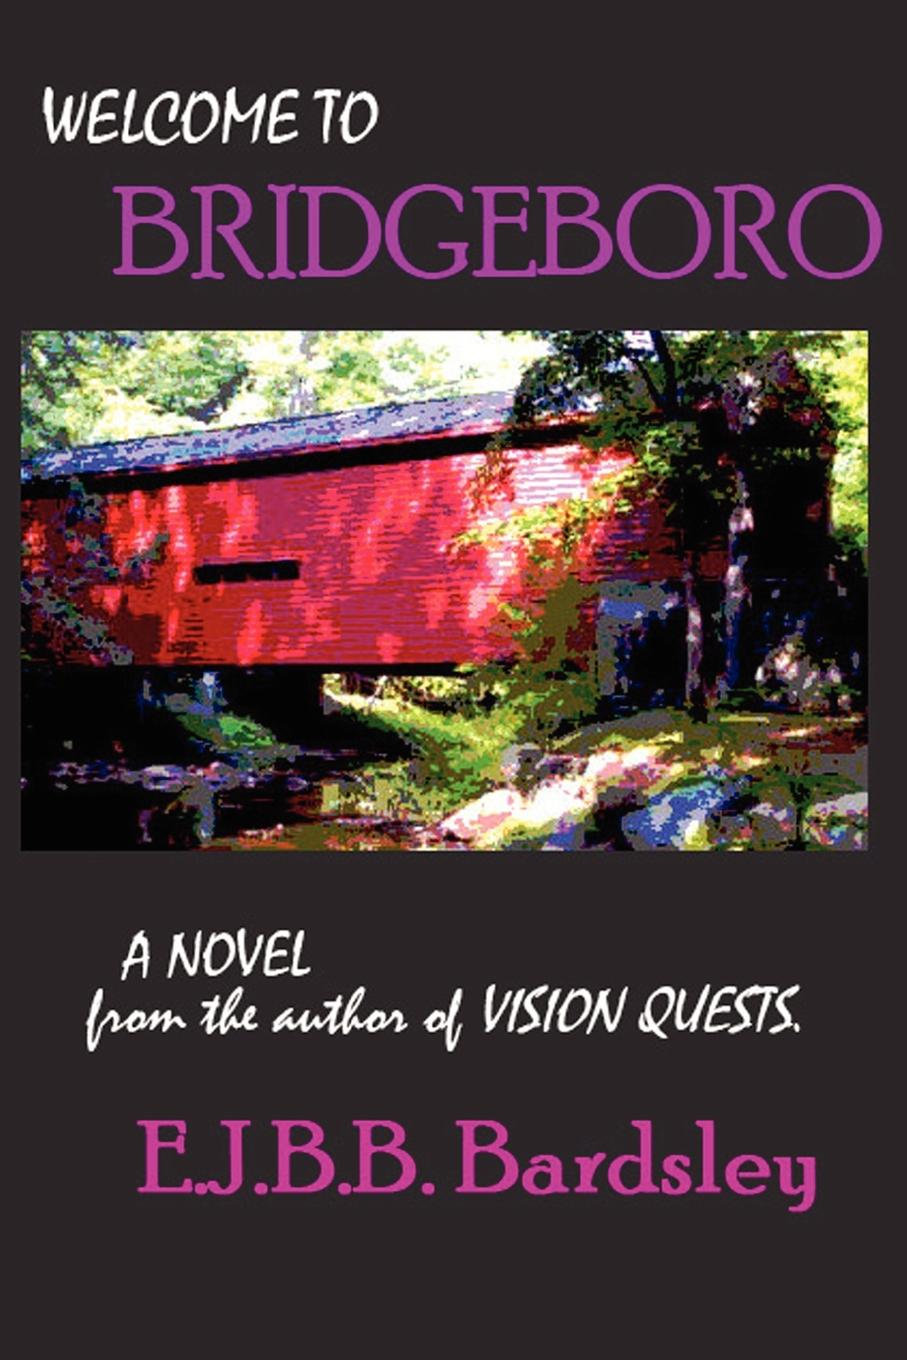 Elaine J. Bardsley Welcome to Bridgeboro mystery msf 2402